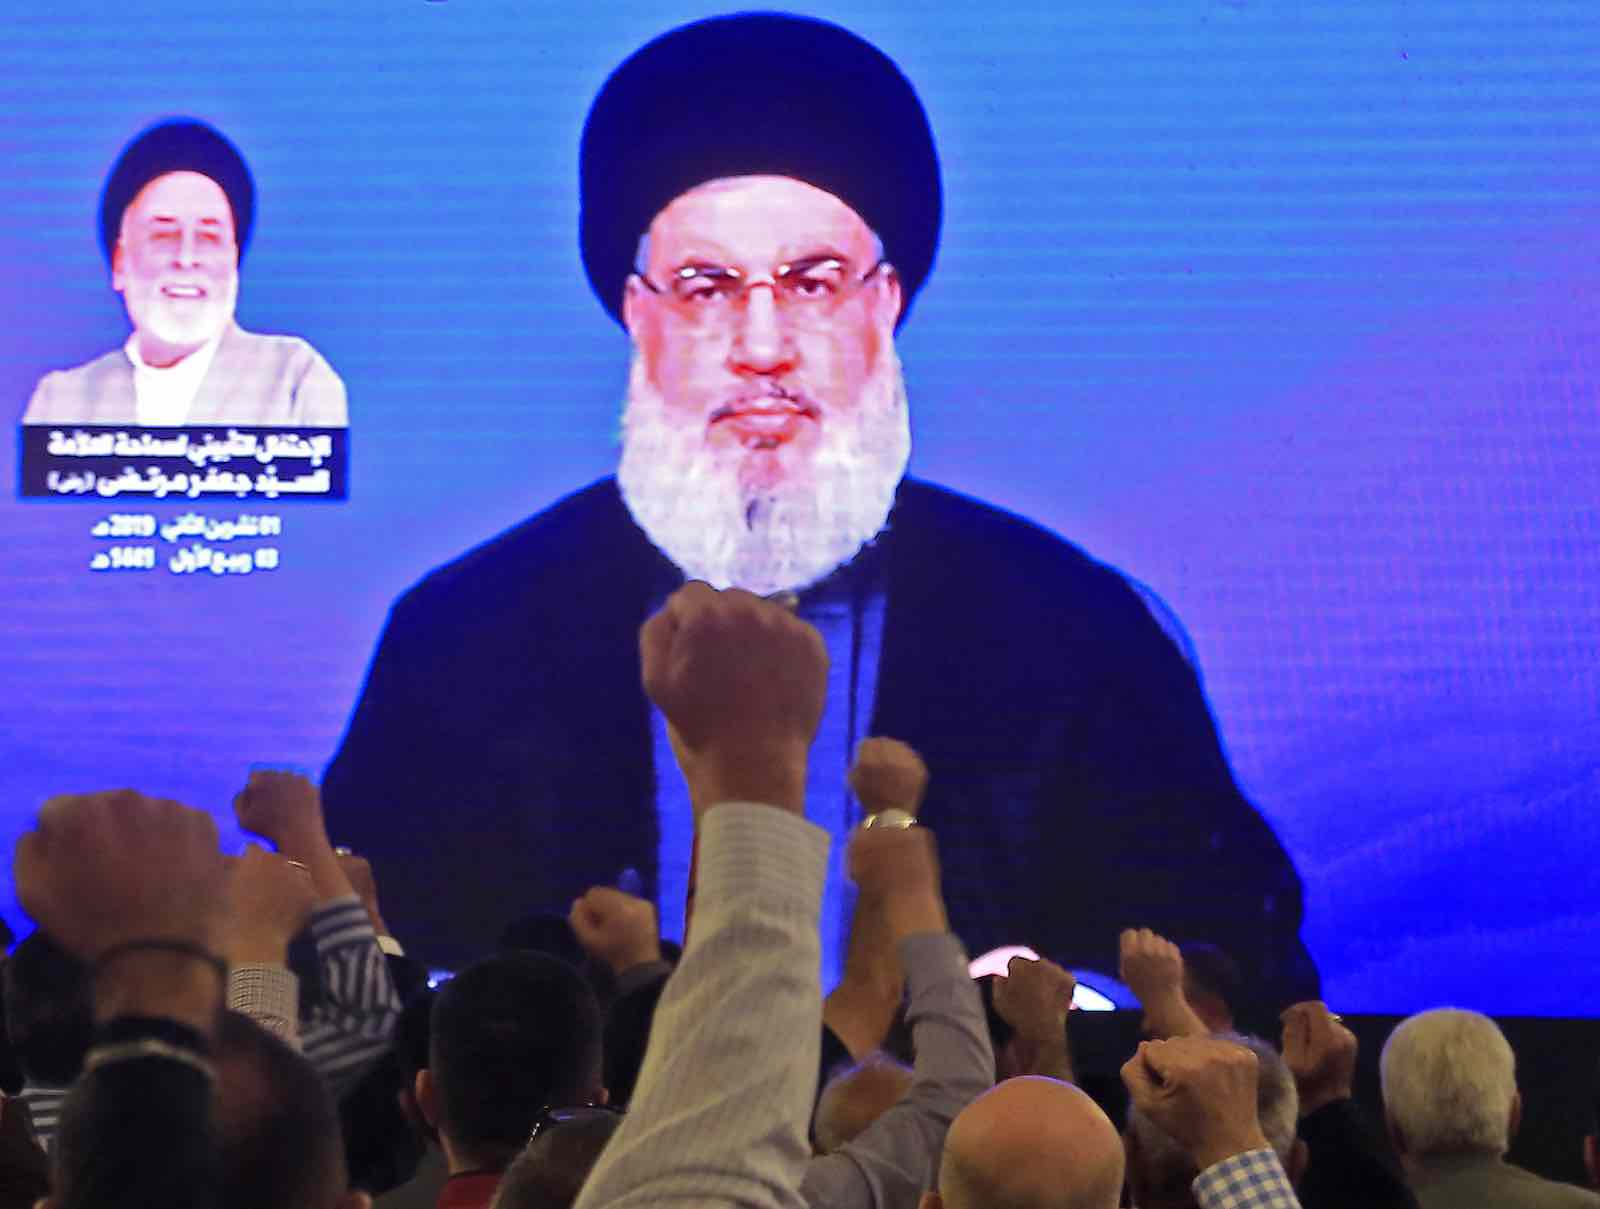 Supporters of Hassan Nasrallah, the head of Lebanon's militant Hezbollah movement, watch him speak through a giant screen at a mosque in Beirut's southern suburbs on 1 November (Photo: AFP via Getty Images)